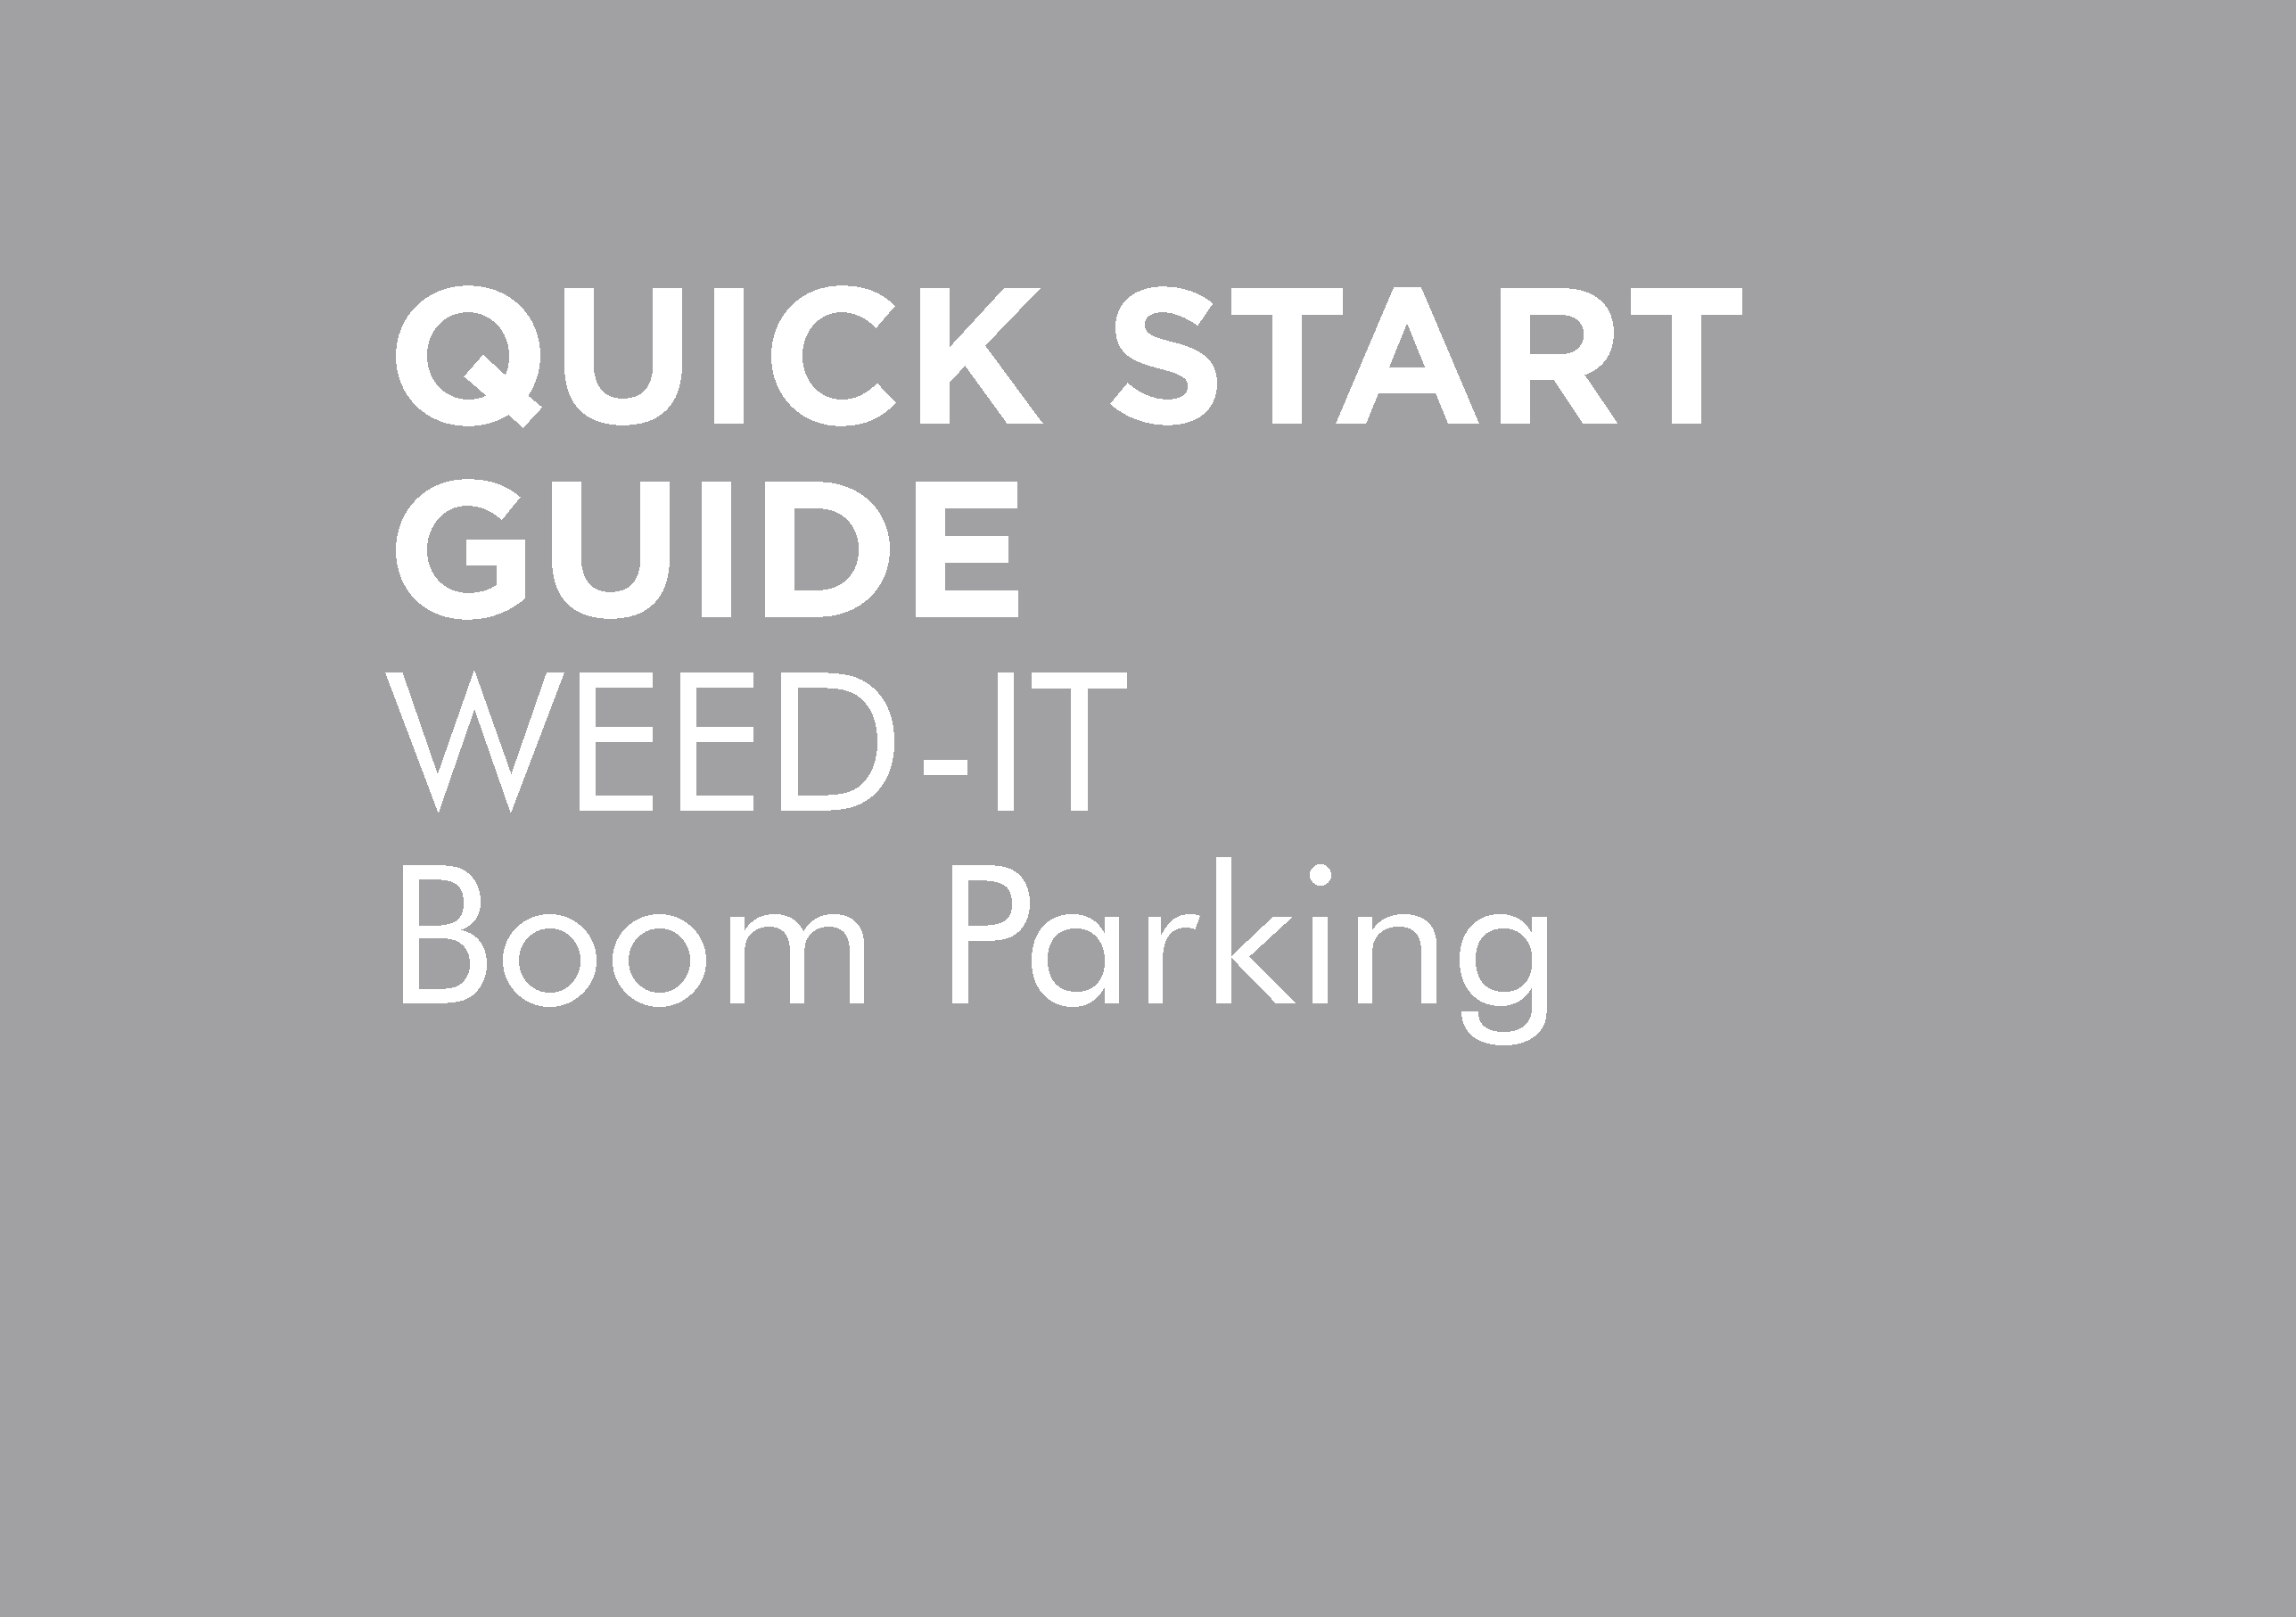 BT-OMWEED-QSG – WEEDIT PARKING QUICK START GUIDE